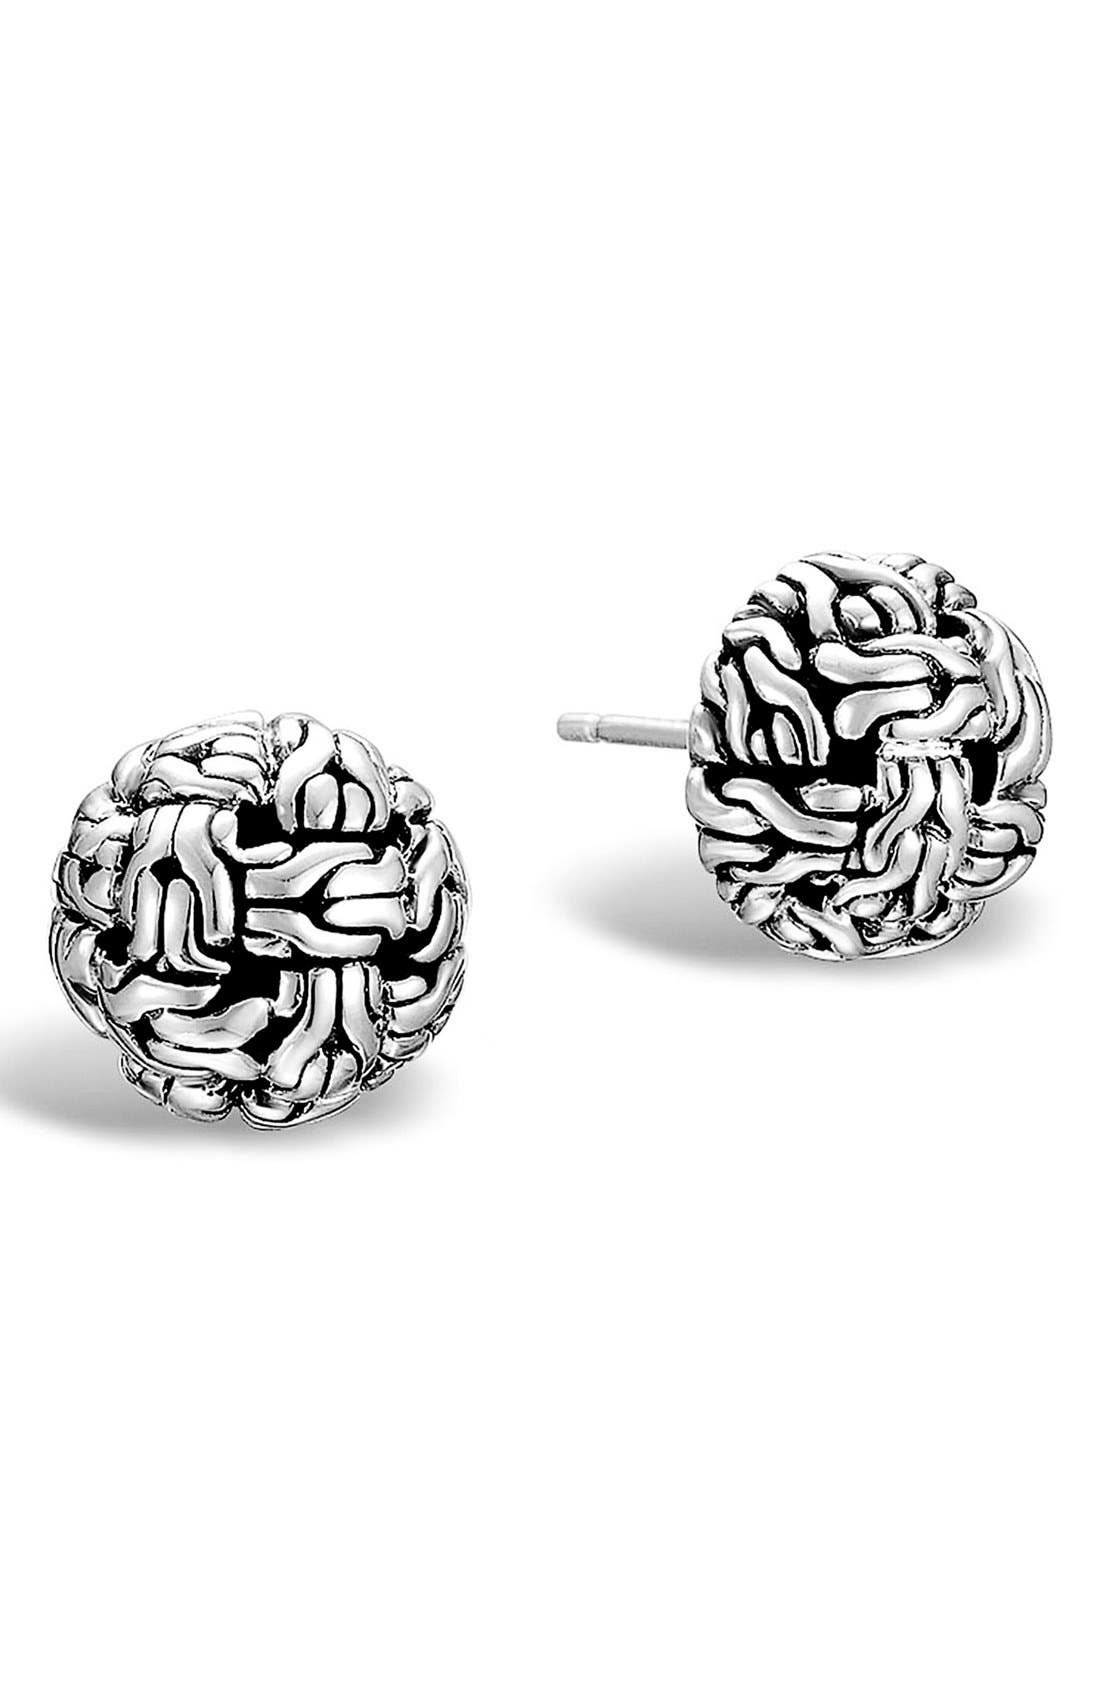 Alternate Image 1 Selected - John Hardy 'Classic Chain' Stud Earrings